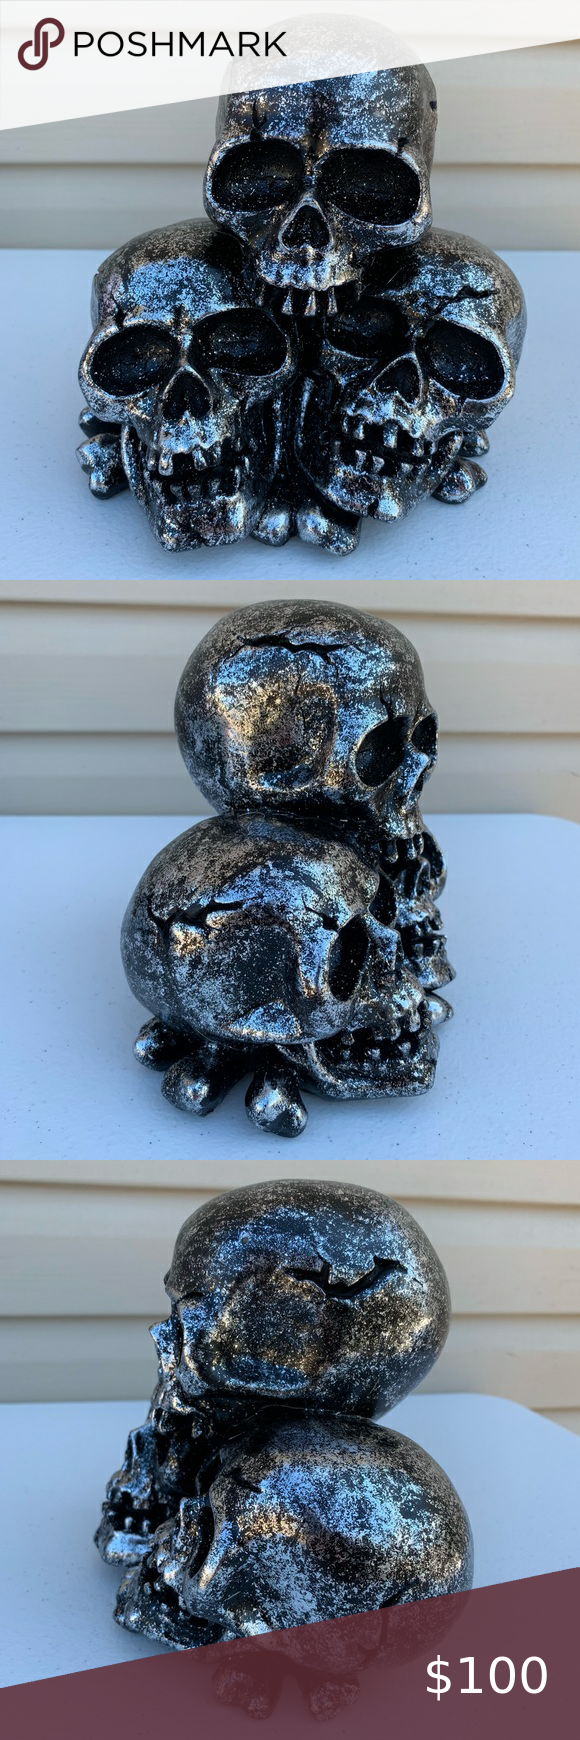 GOTH WITCHY HALLOWEEN SKULL STATUE FIGURINE DECOR! ✅ Listed price is just a placeholder. REASONABLE OFFERS ACCEPTED! ✅  •Badass INTENTIONALLY DISTRESSED Shiny Metallic Skull Pile Small Statue Figure Figurine Display Piece Home Decor Decoration Decorative Accent. •Brand new. Never used. Has some sticker residue. •Roughly 6.5